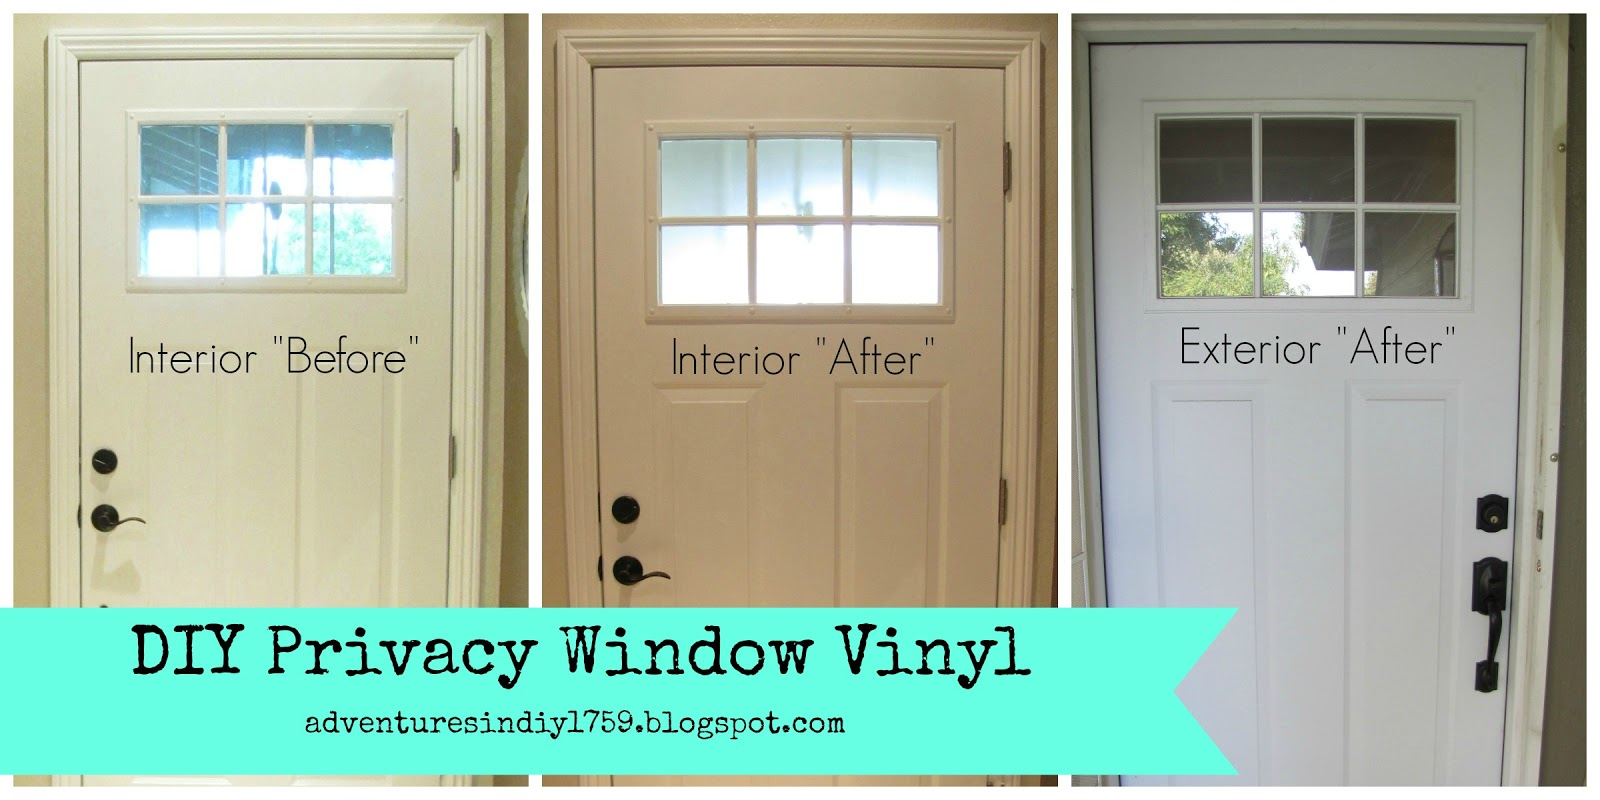 diy window privacy window film you can clearly see right through the windows adventures in diy diy privacy window vinyl